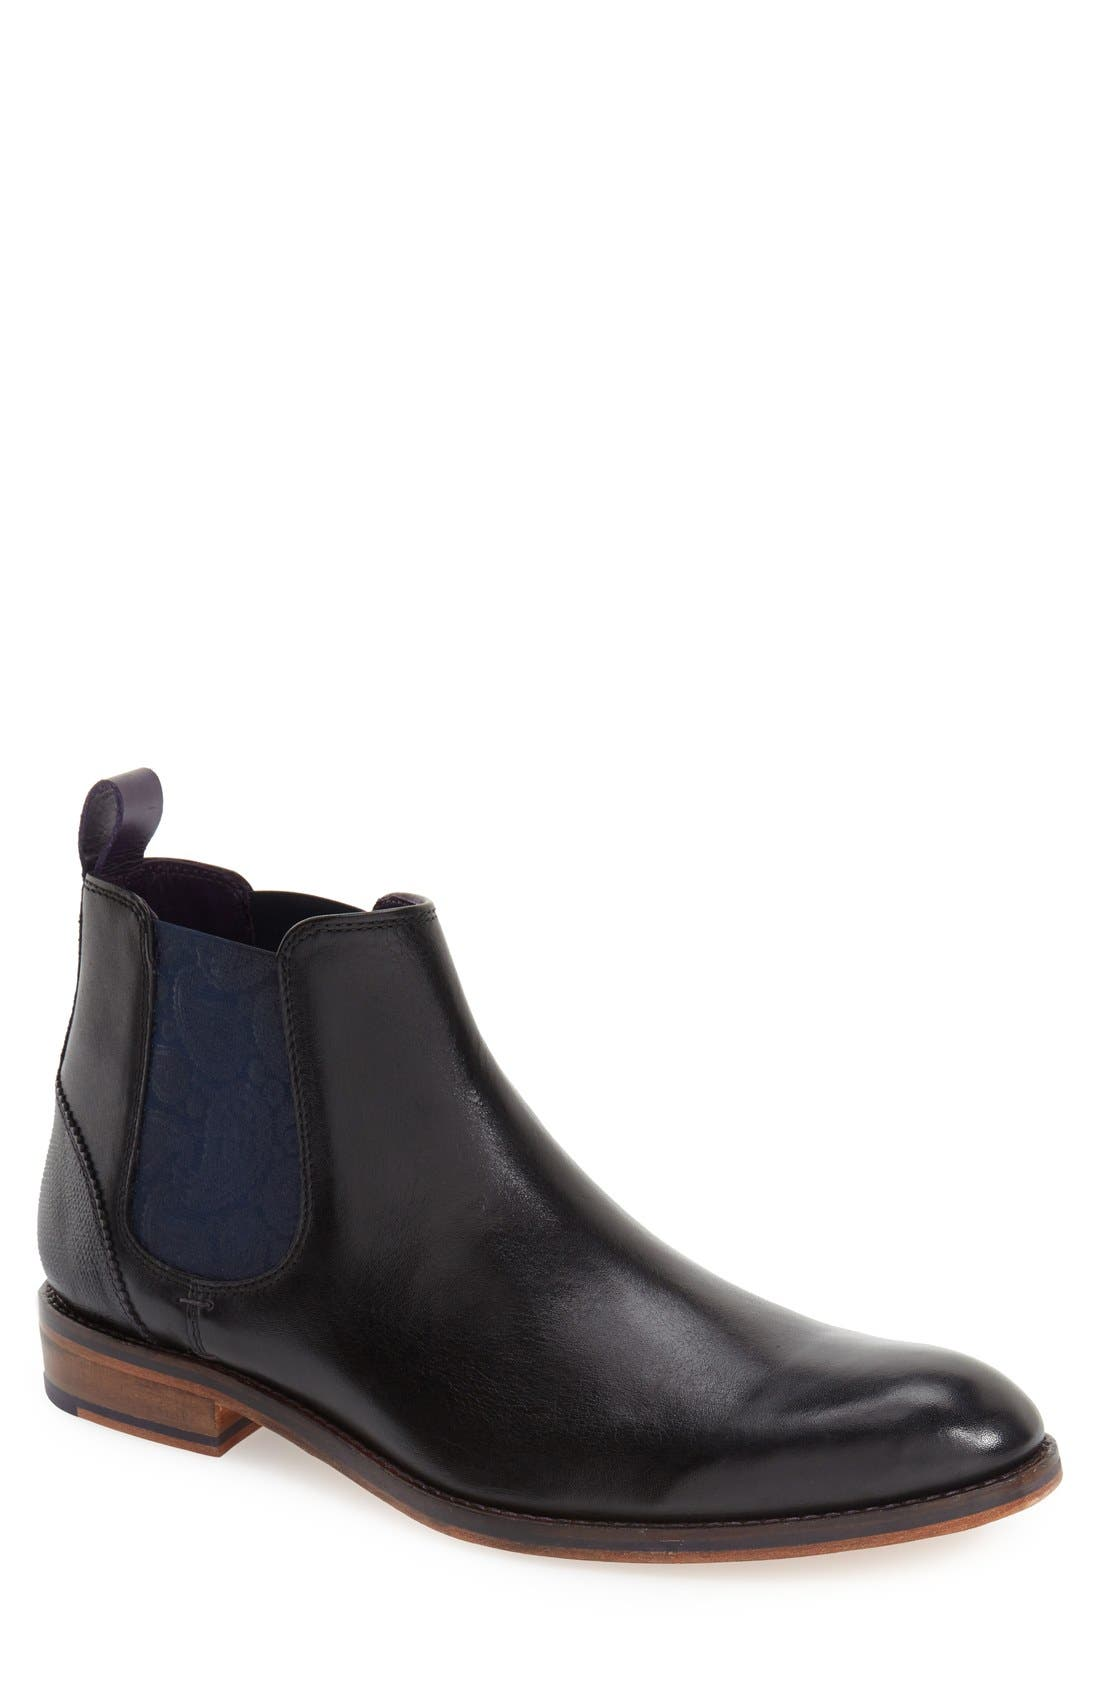 'Camroon 4' Chelsea Boot,                             Main thumbnail 2, color,